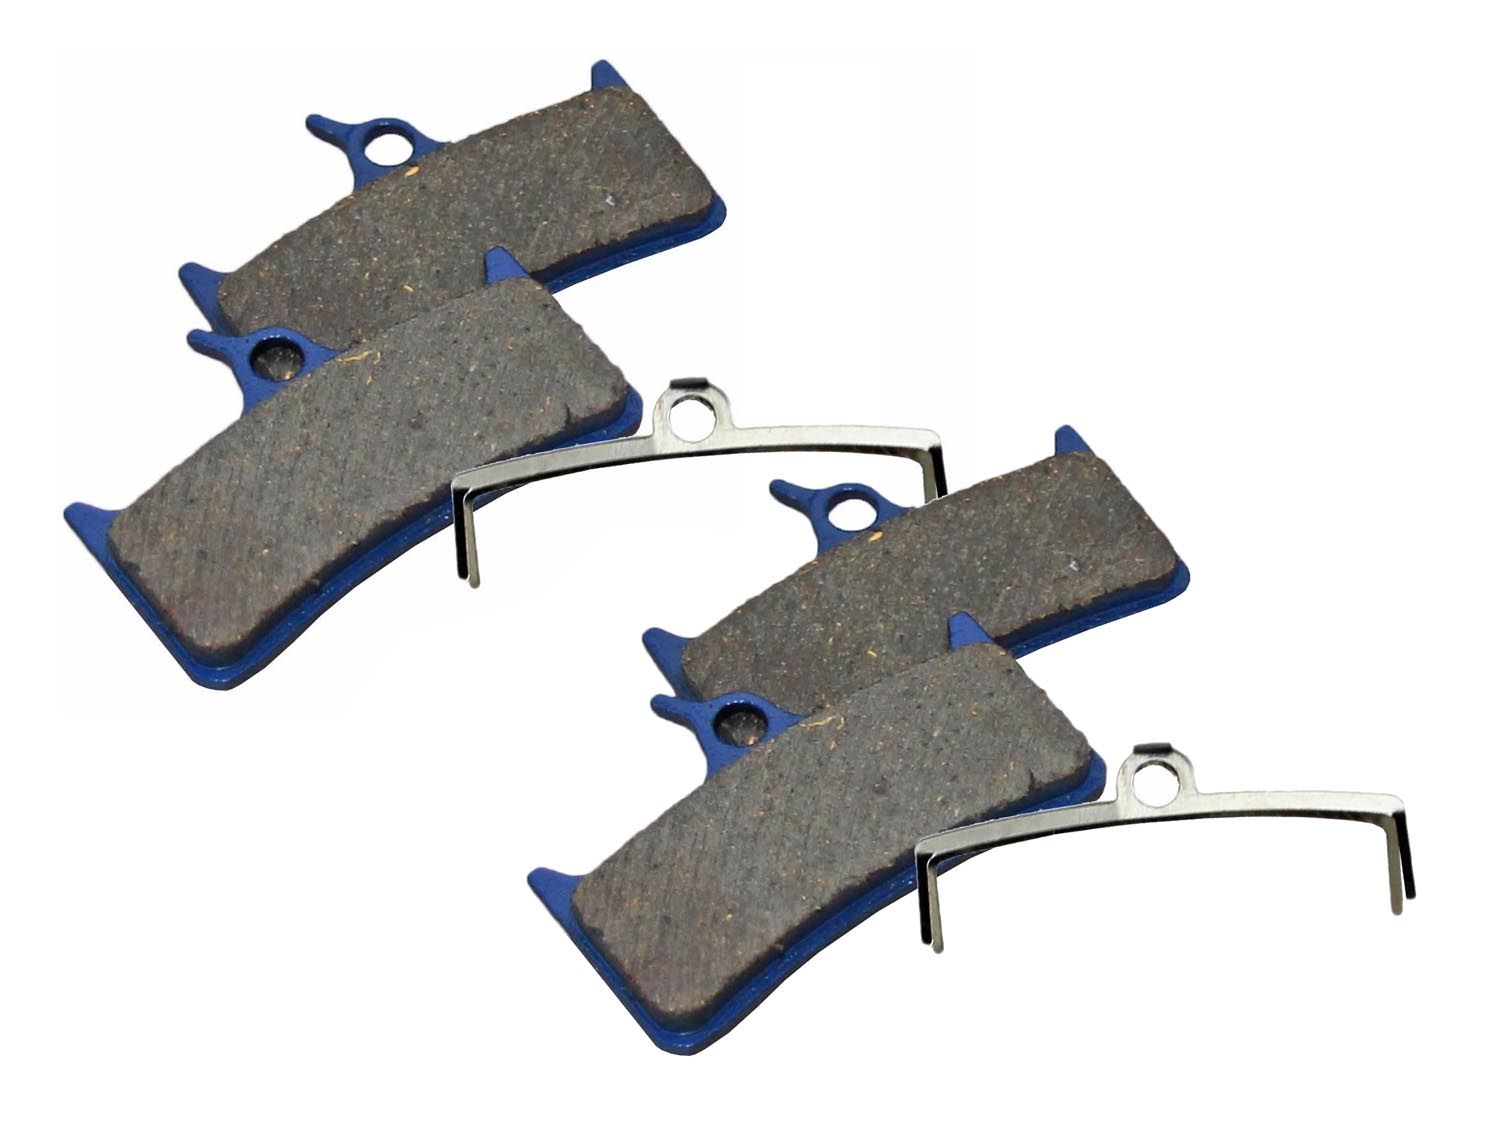 4x bremsbel ge scheibenbremsbel ge f r shimano xt m755 ds 09 scheiben brake pads ebay. Black Bedroom Furniture Sets. Home Design Ideas